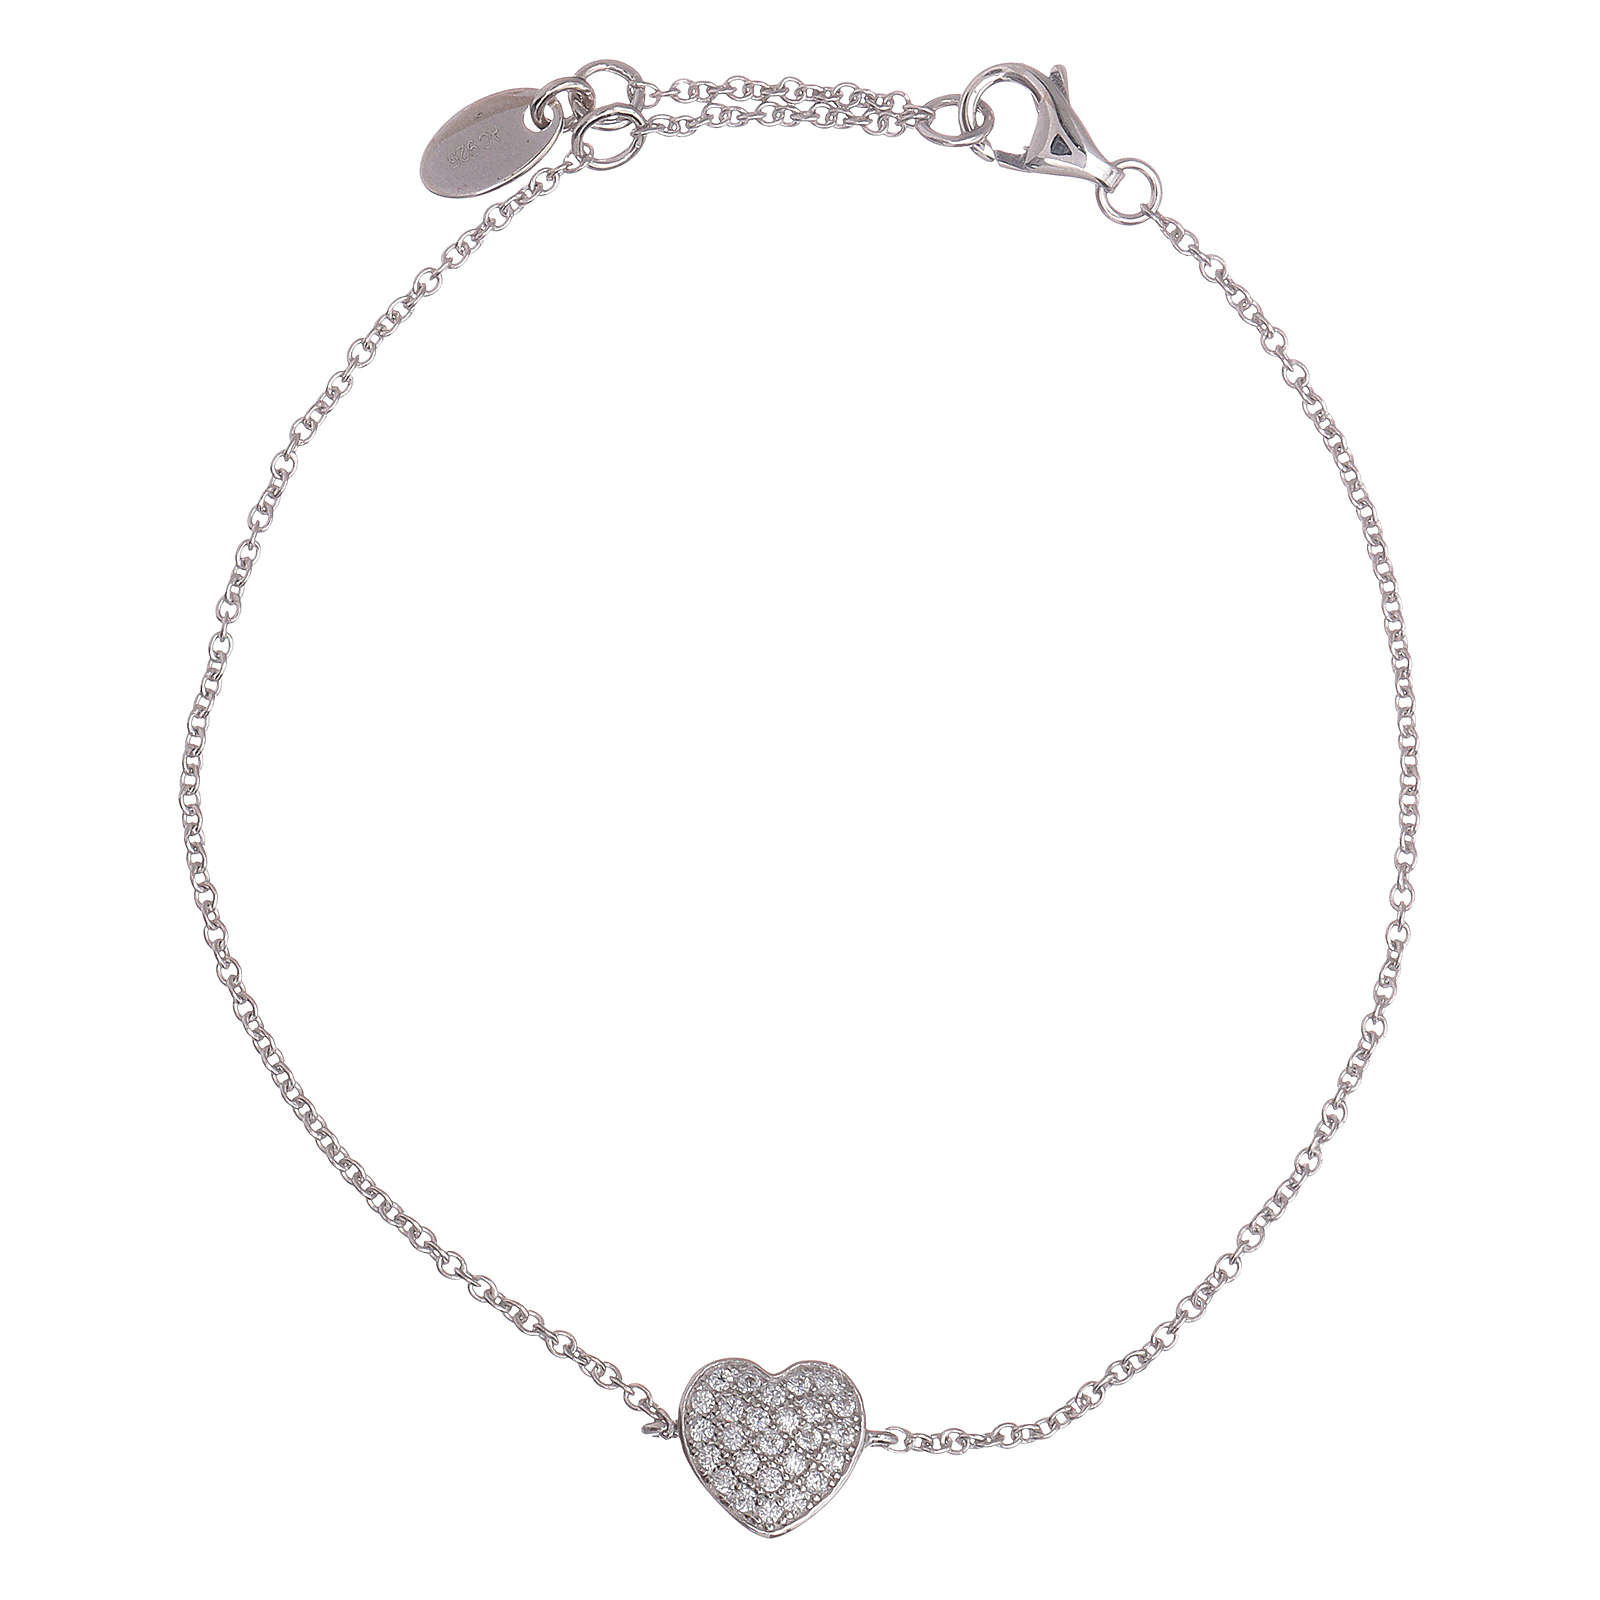 AMEN  925 sterling silver bracelet with a rhodium heart and zircons 4